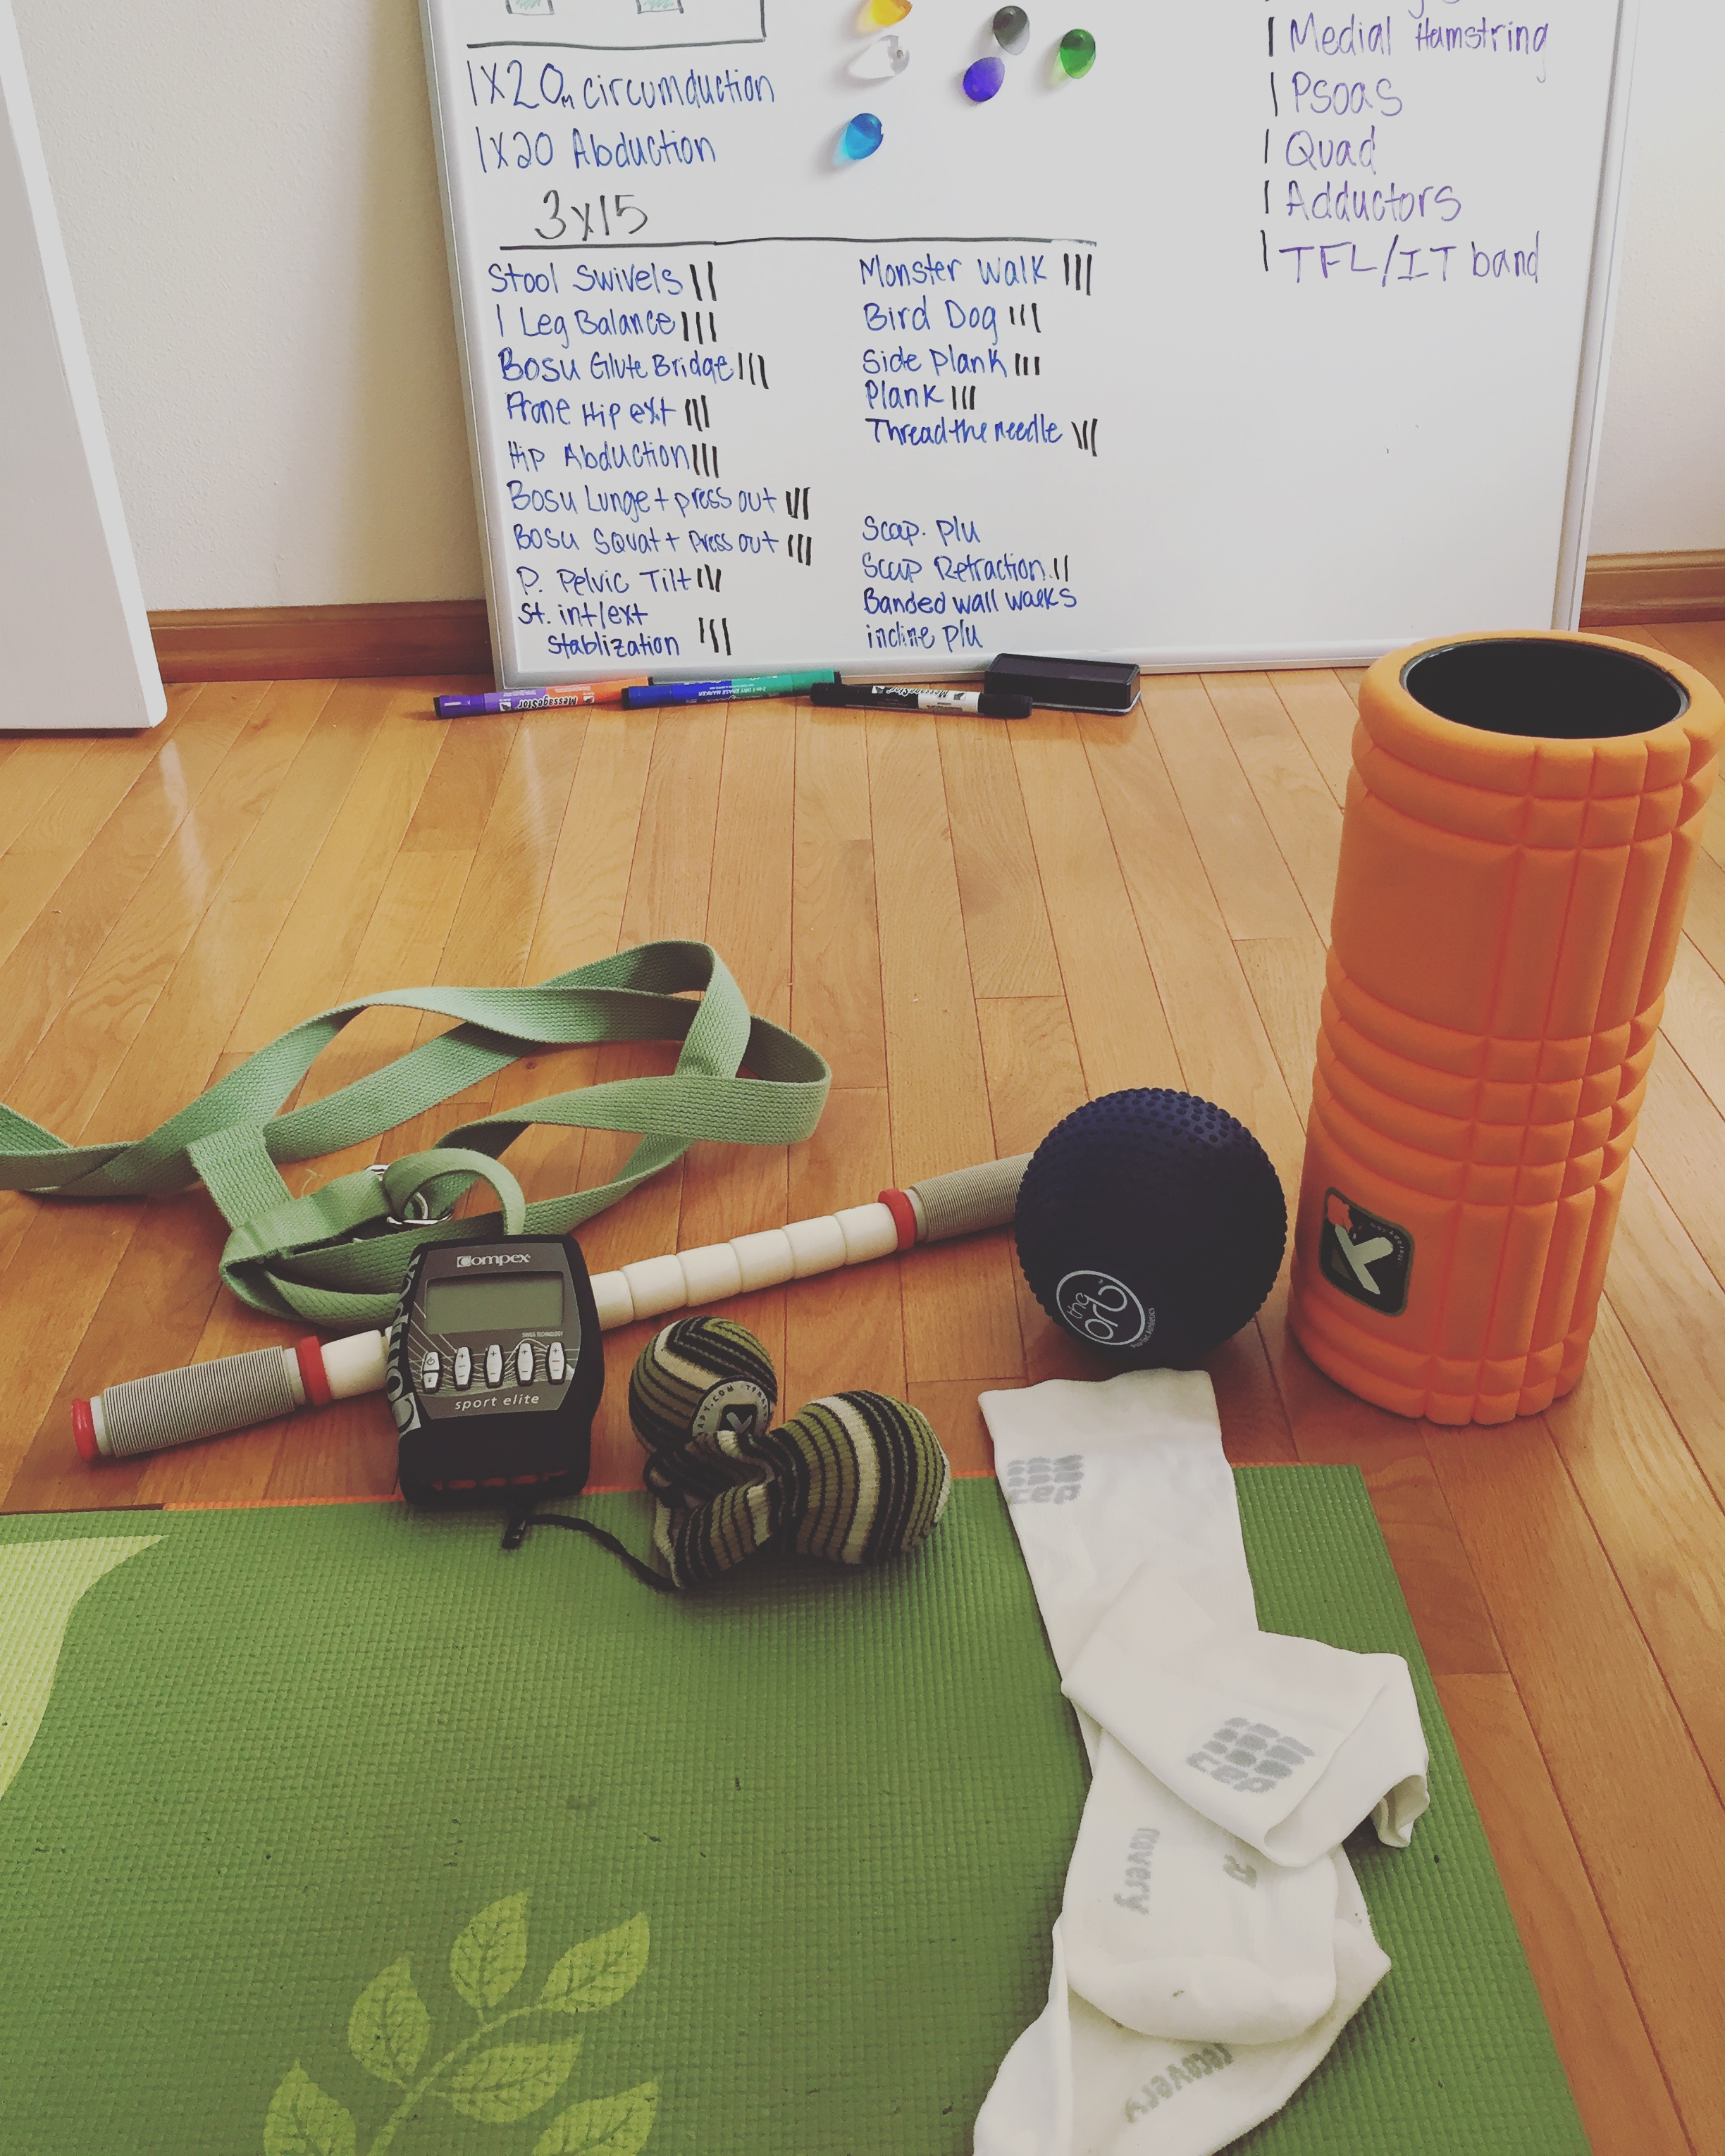 My favorite at home recovery tools + some of my PT (at the time of the photo)